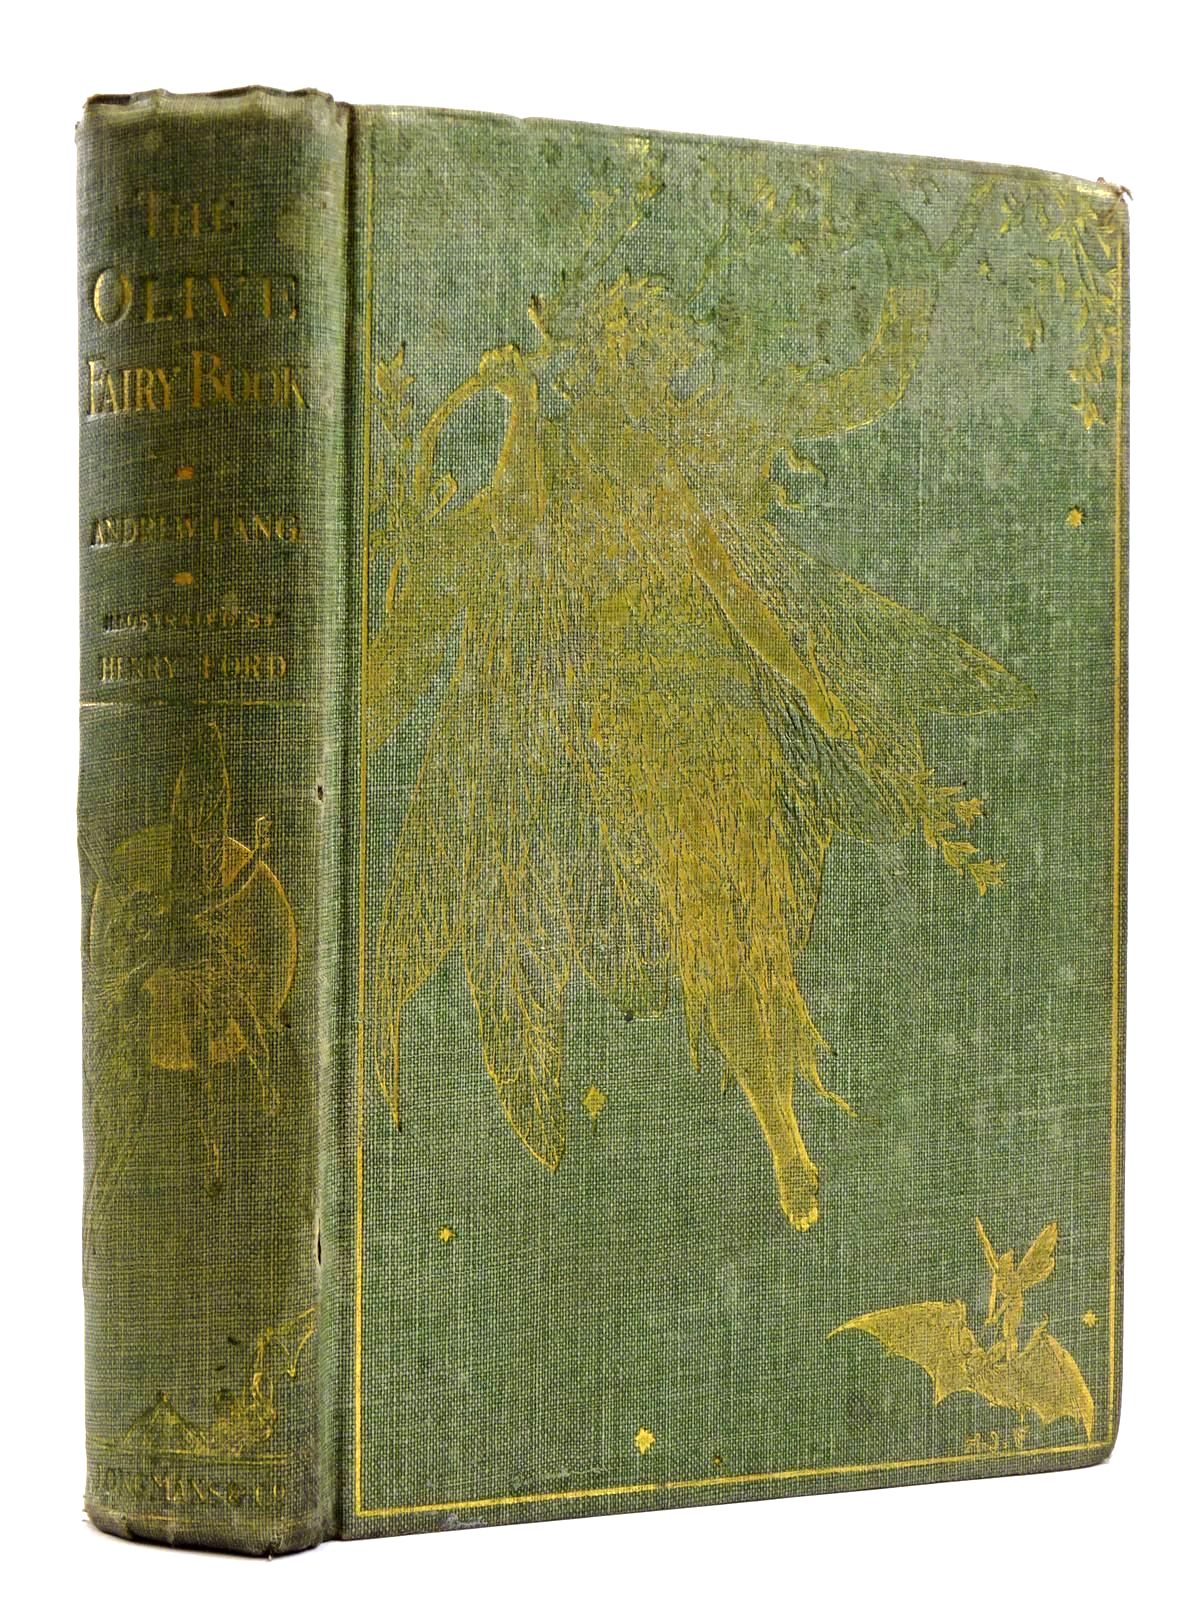 Photo of THE OLIVE FAIRY BOOK written by Lang, Andrew illustrated by Ford, H.J. published by Longmans, Green & Co. (STOCK CODE: 2131551)  for sale by Stella & Rose's Books